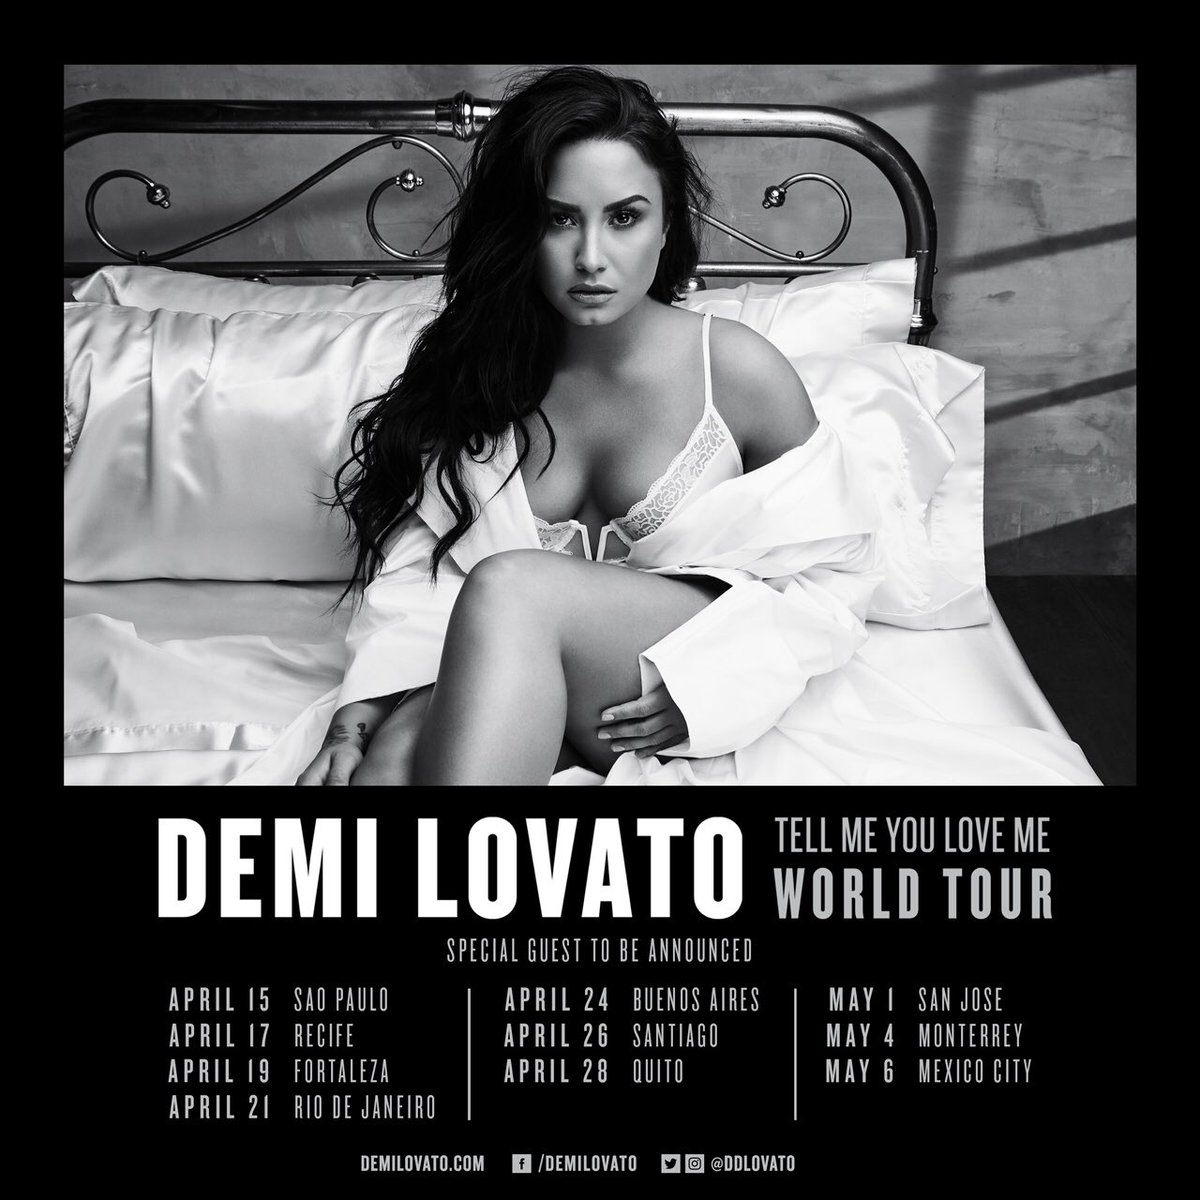 Brazil and Chile!! Tickets for the #TellMeYouLoveMeTour are on sale now ???????????? https://t.co/FdRYQe0I9Y https://t.co/4QuZXb1gRn